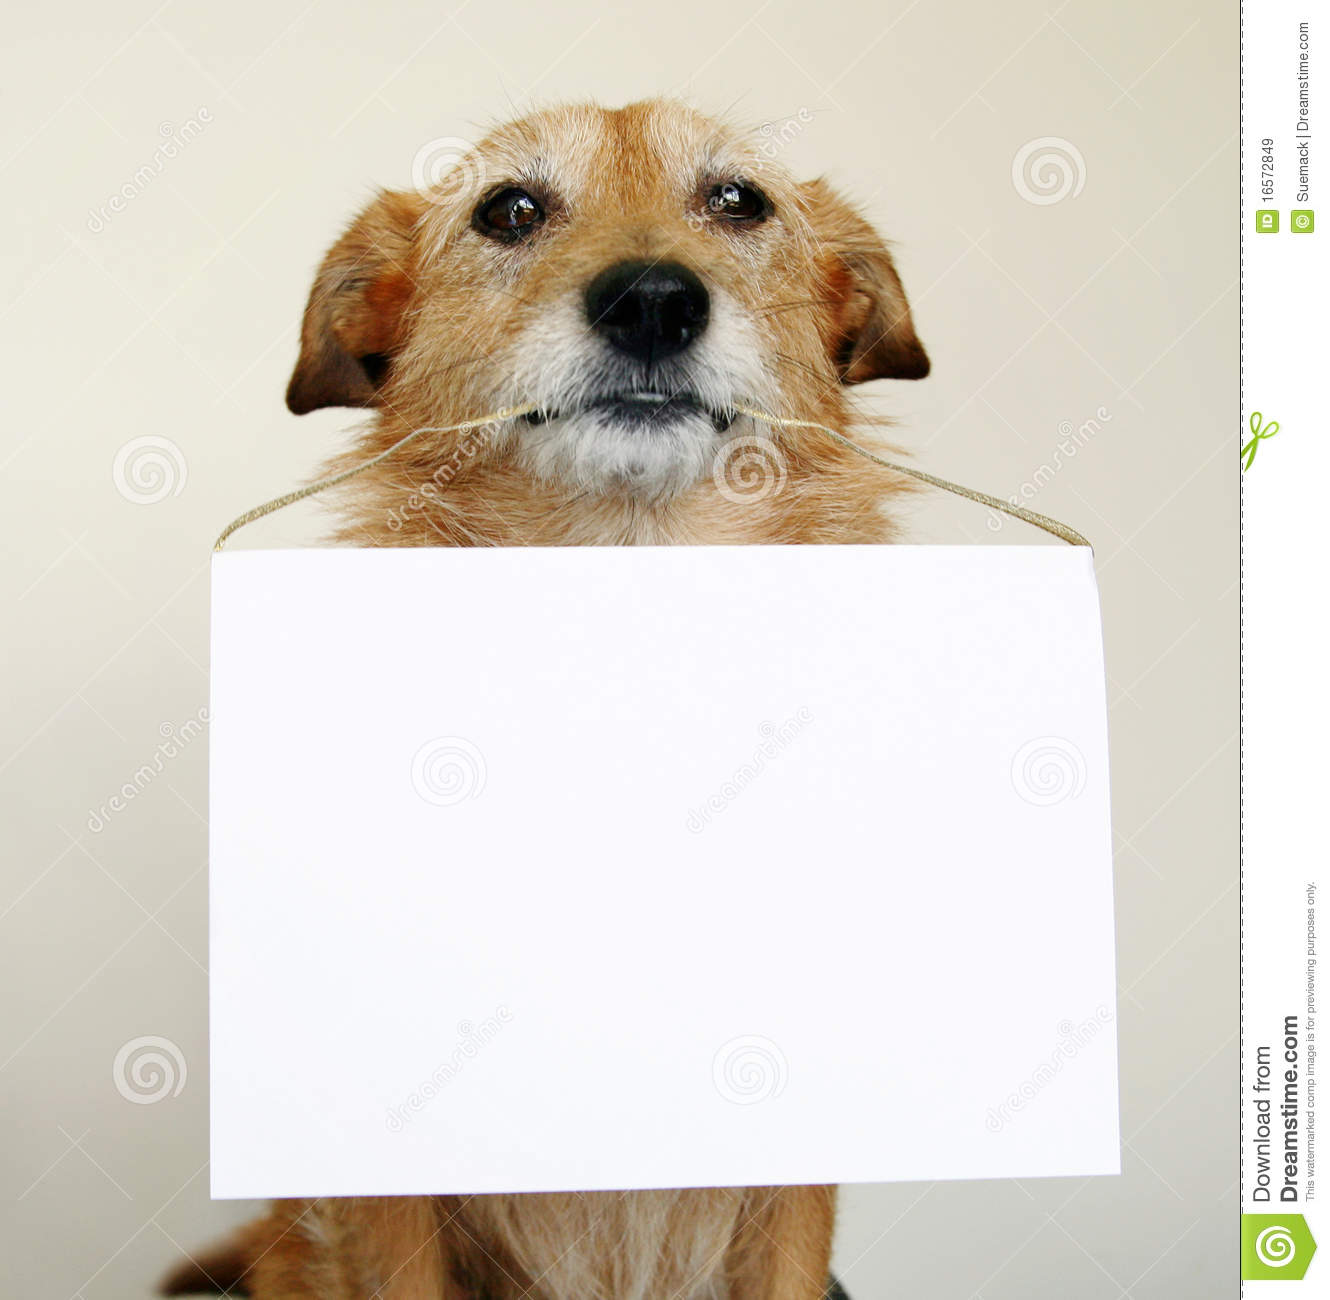 Dog holding a blank sign